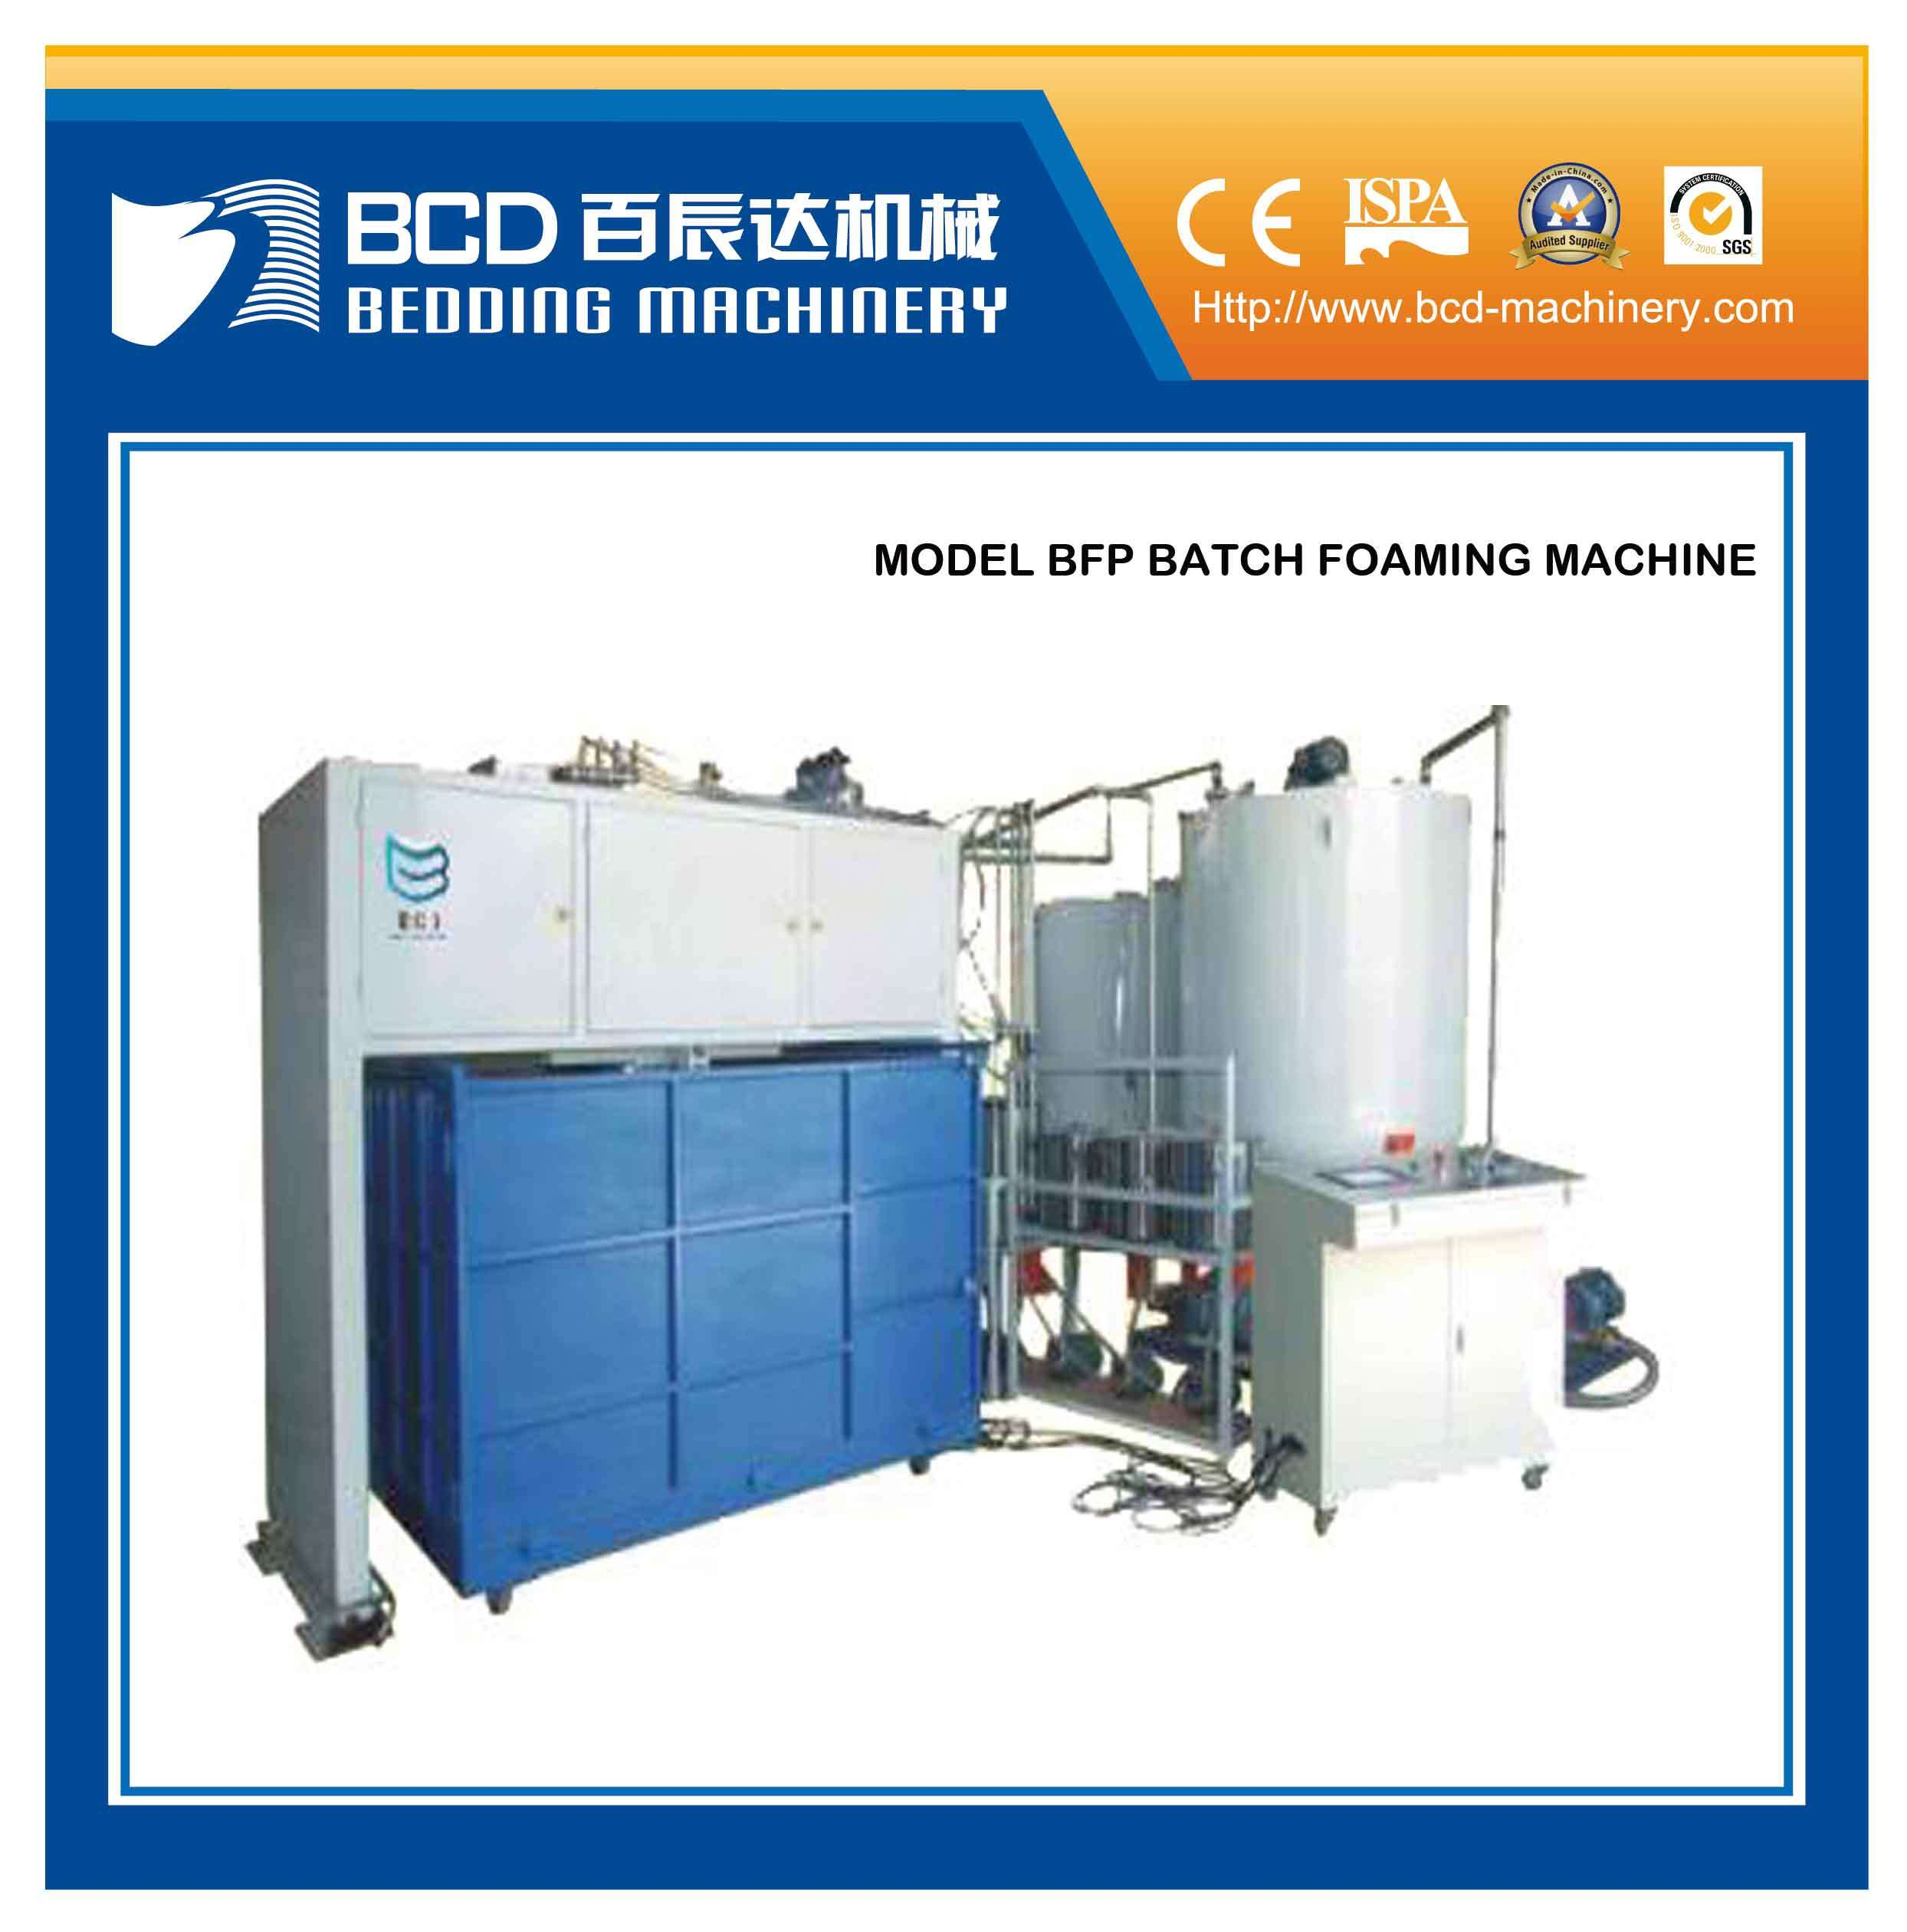 Batch Foaming Machine (BFP batch foaming)